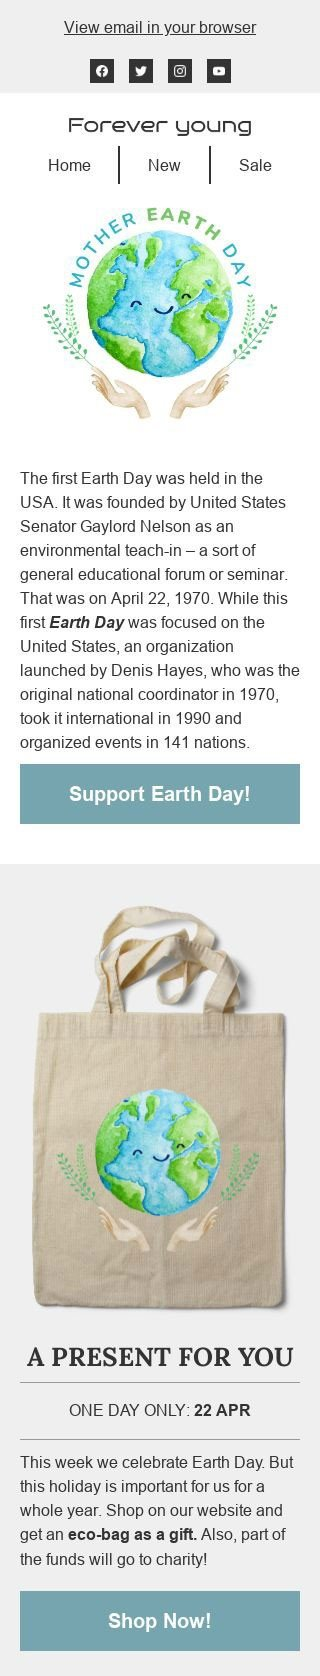 Earth Day Email Template «Present for you» for Fashion industry mobile view